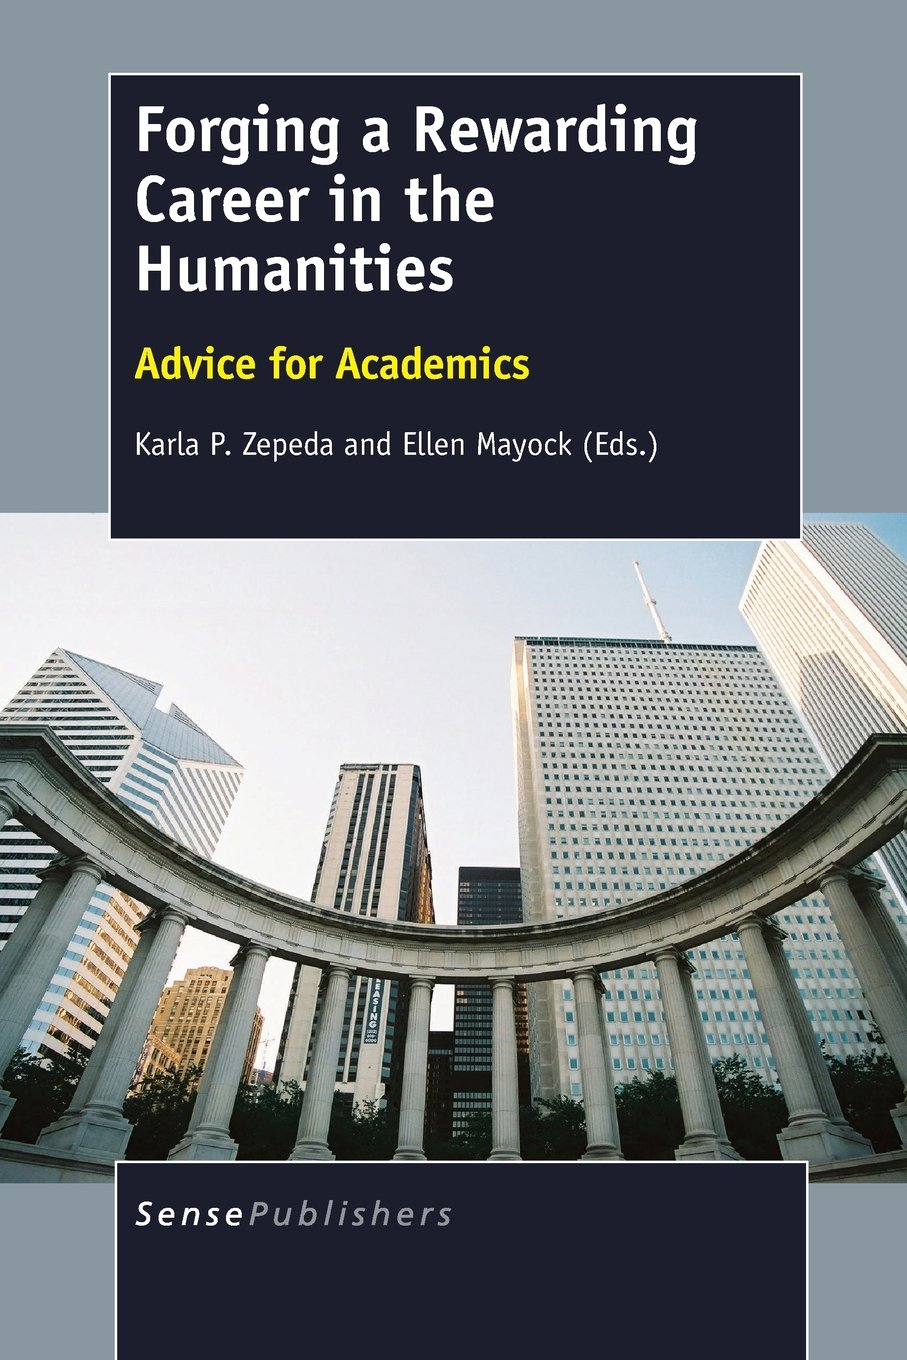 Forging a Rewarding Career in the Humanities: Advice for Academics